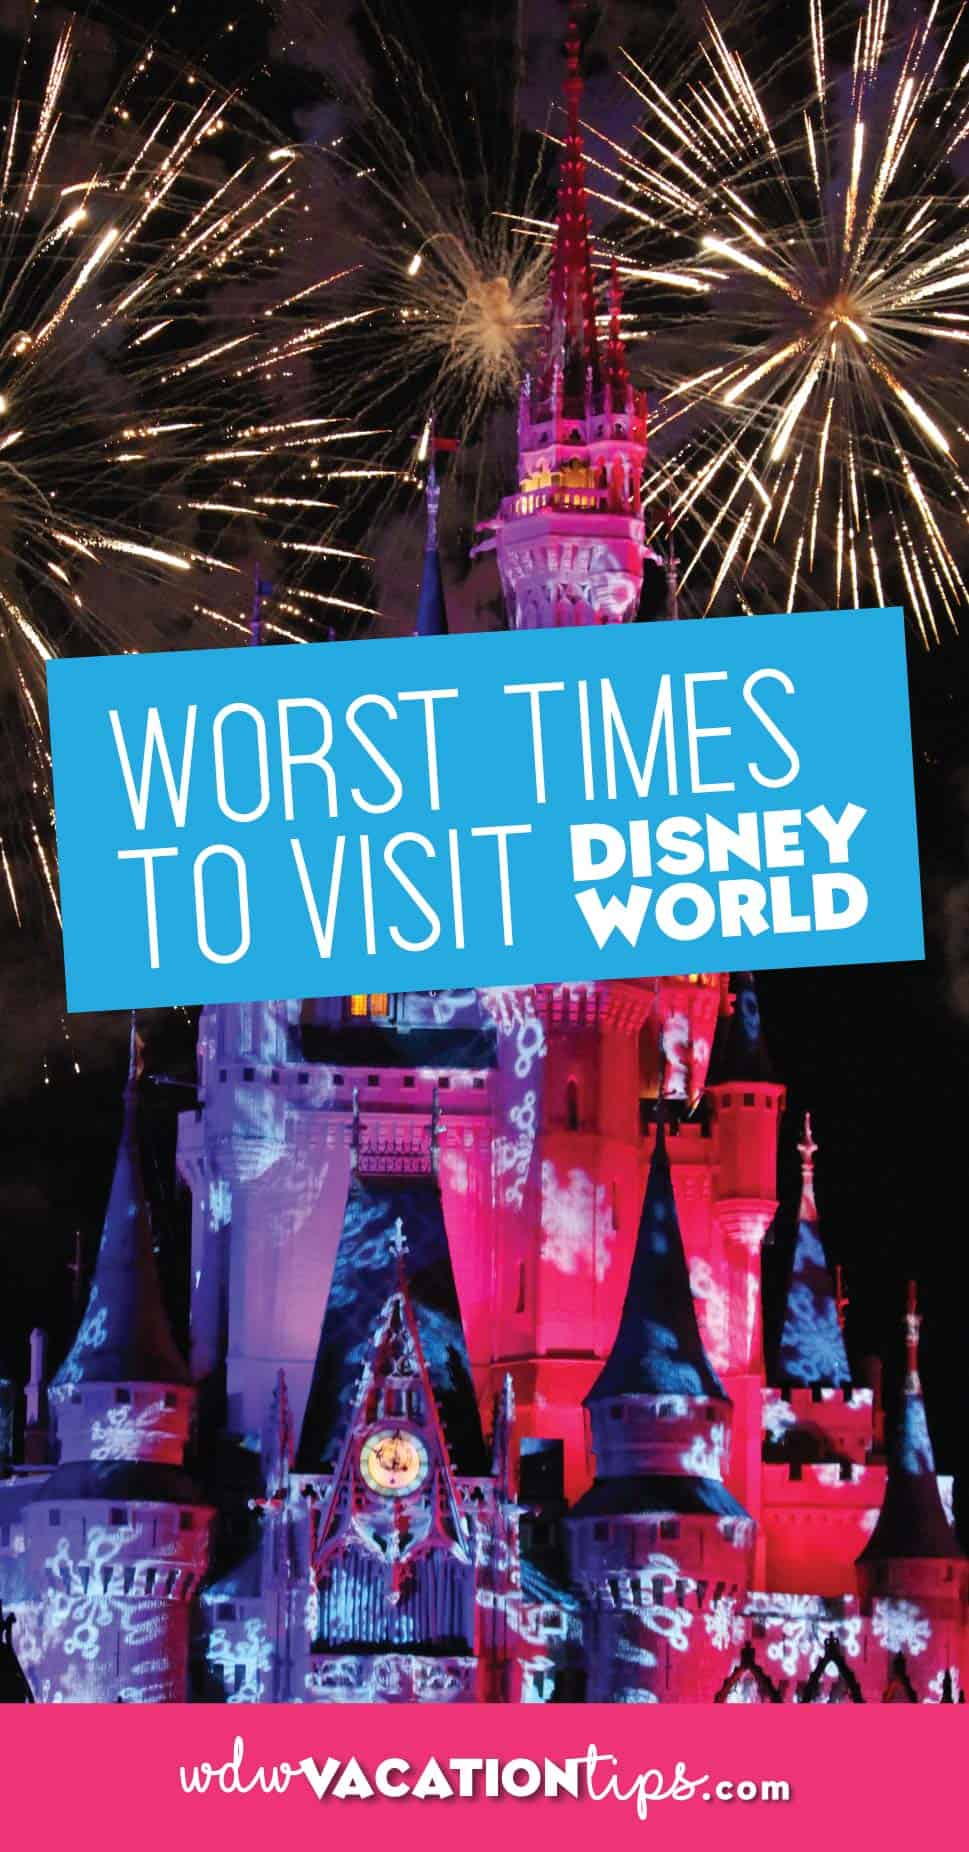 Worst Times to visit Disney World